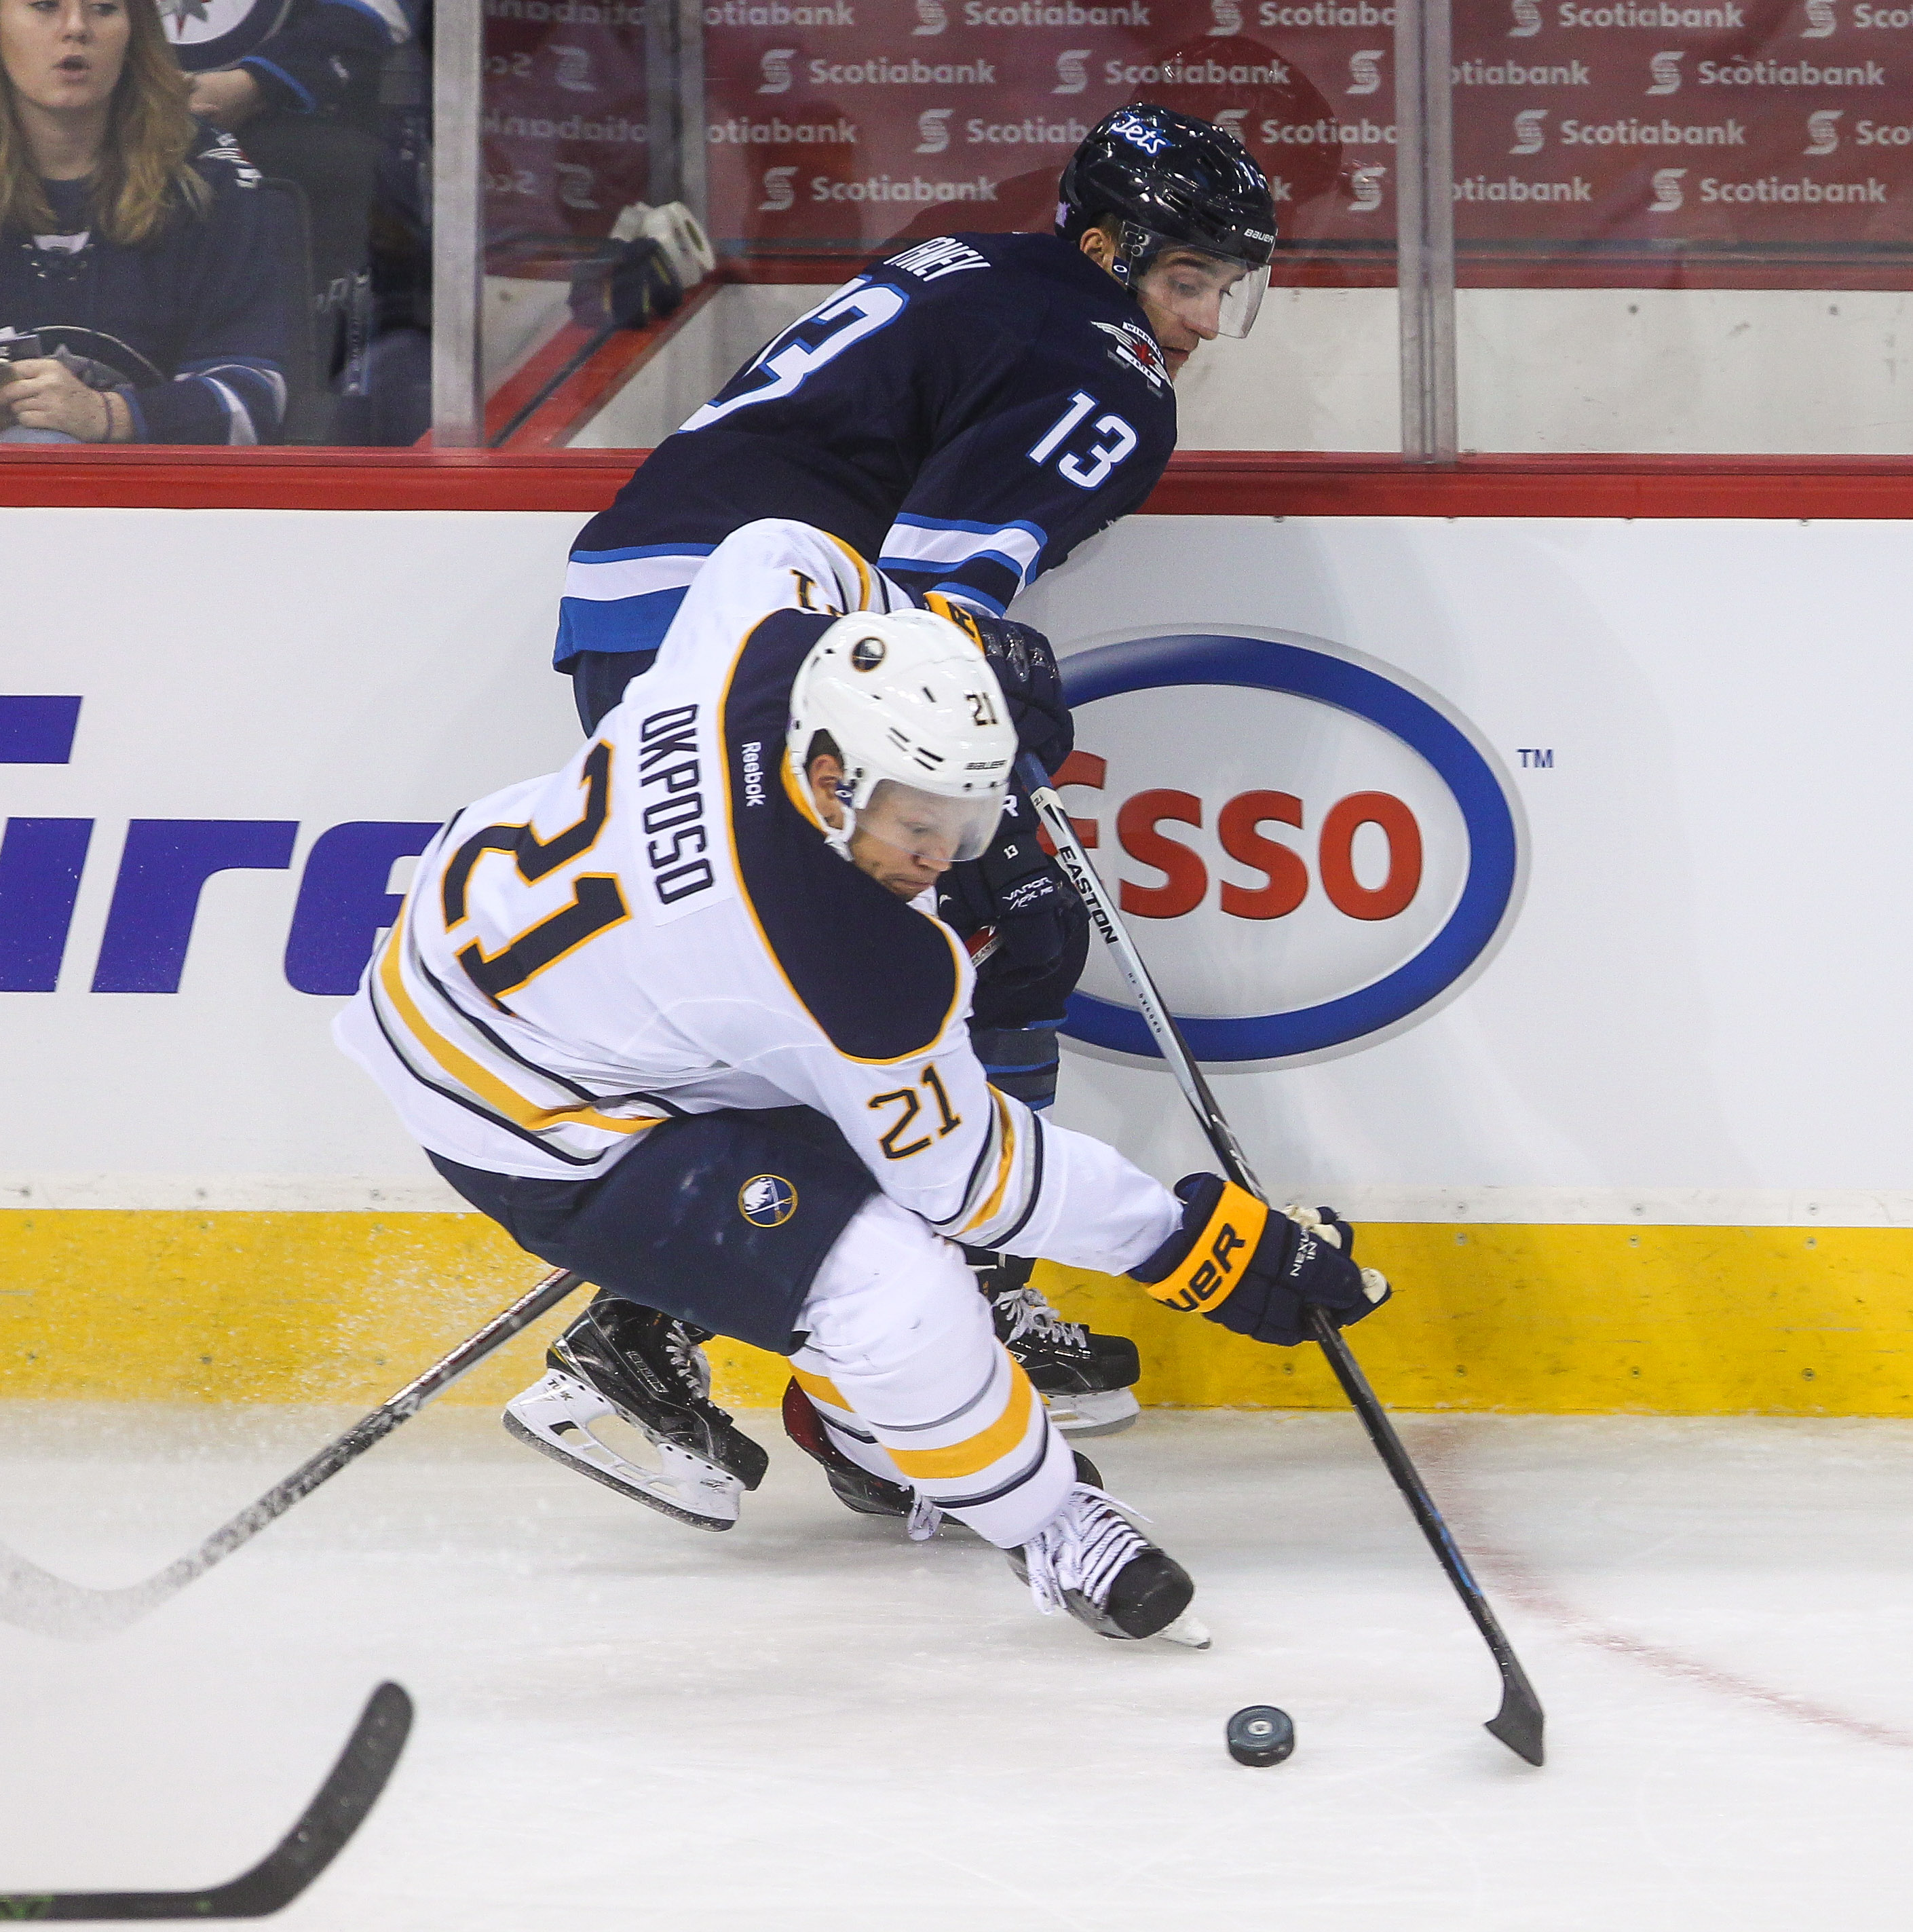 Sabres forward Kyle Okposo forces the Jets' Brandon Tanev off the puck. (Mike Deal / Winnipeg Free Press)